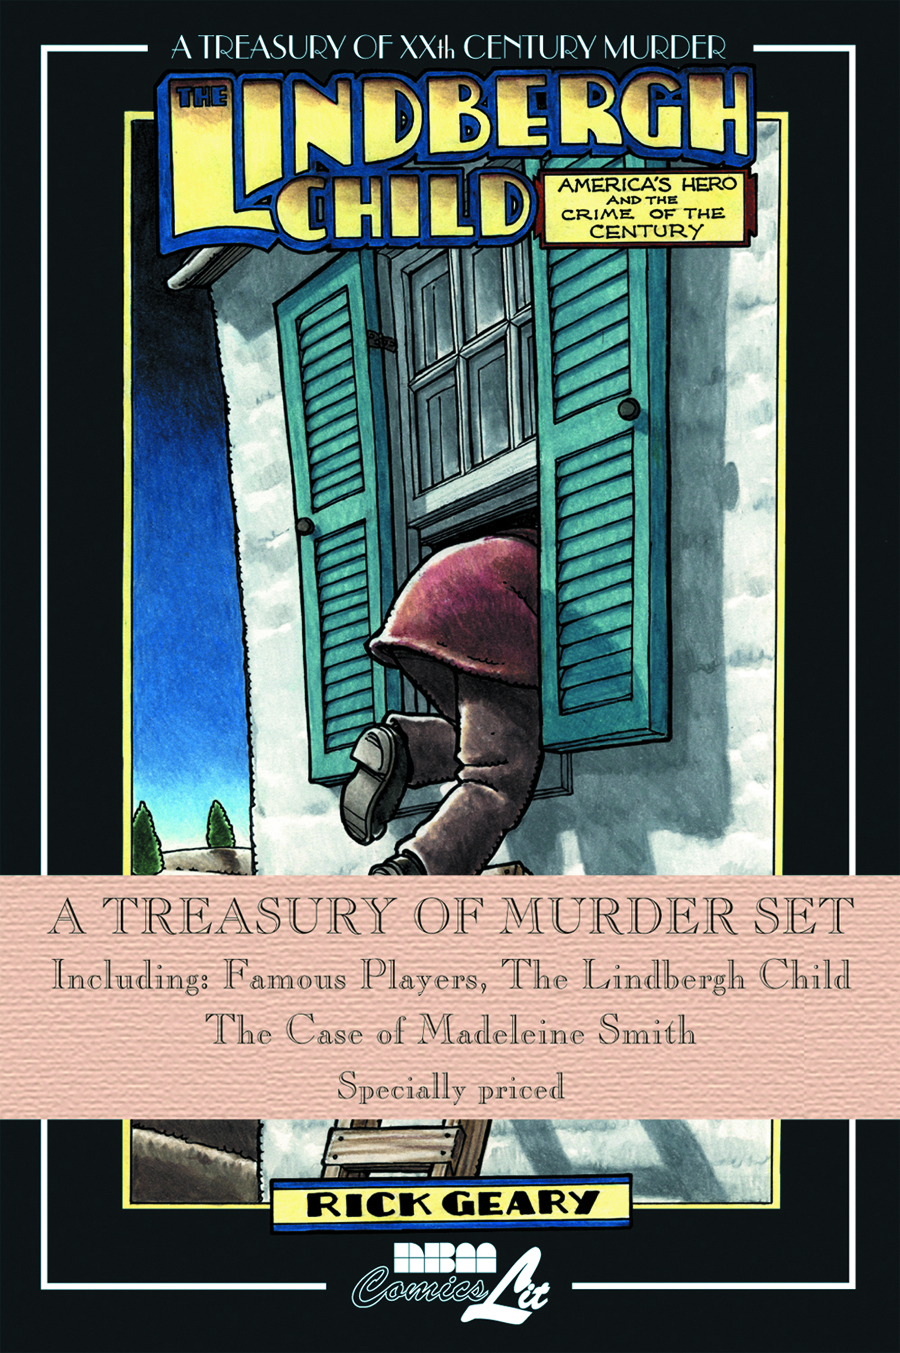 TREASURY OF MURDER SET